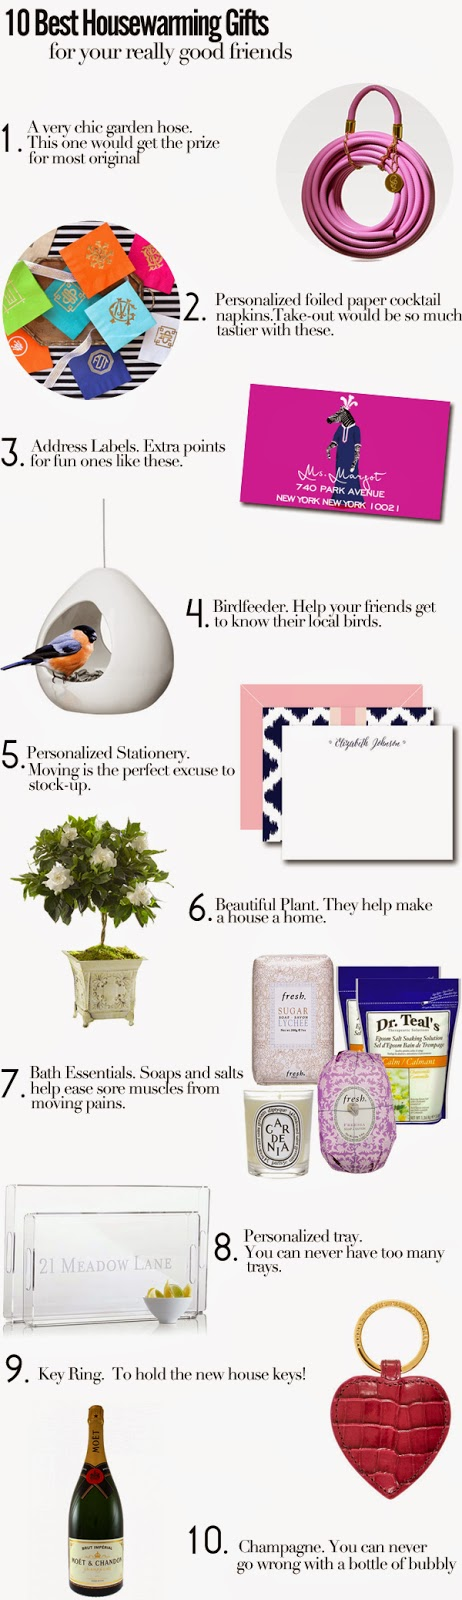 Best Housewarming Gifts For Your Really Good Friends